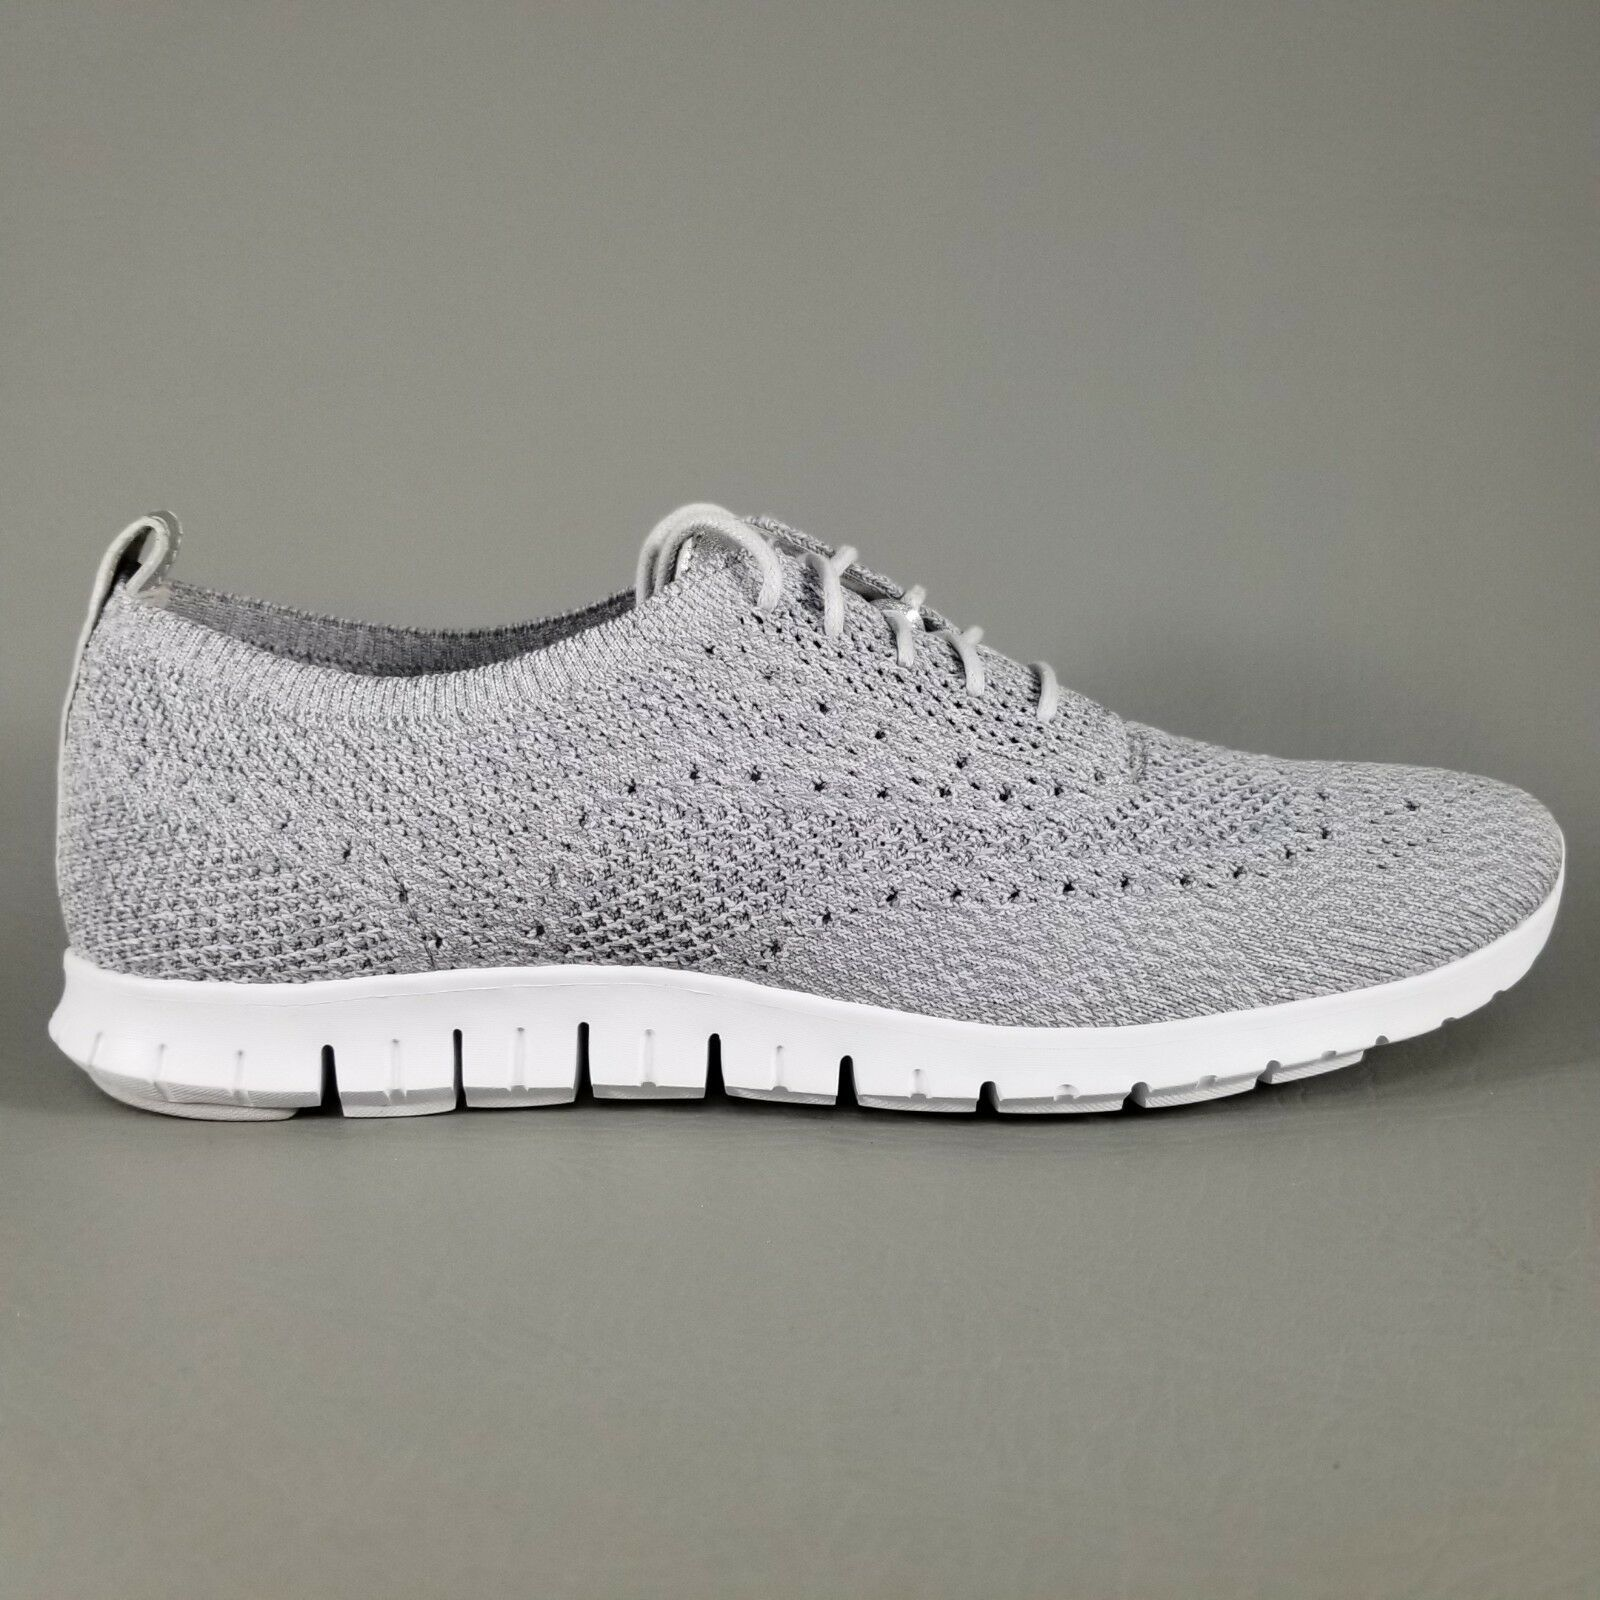 Cole Haan Womens ZeroGrand Stitchlite Wingtip Oxford Size 10 B Dress Shoes Gray